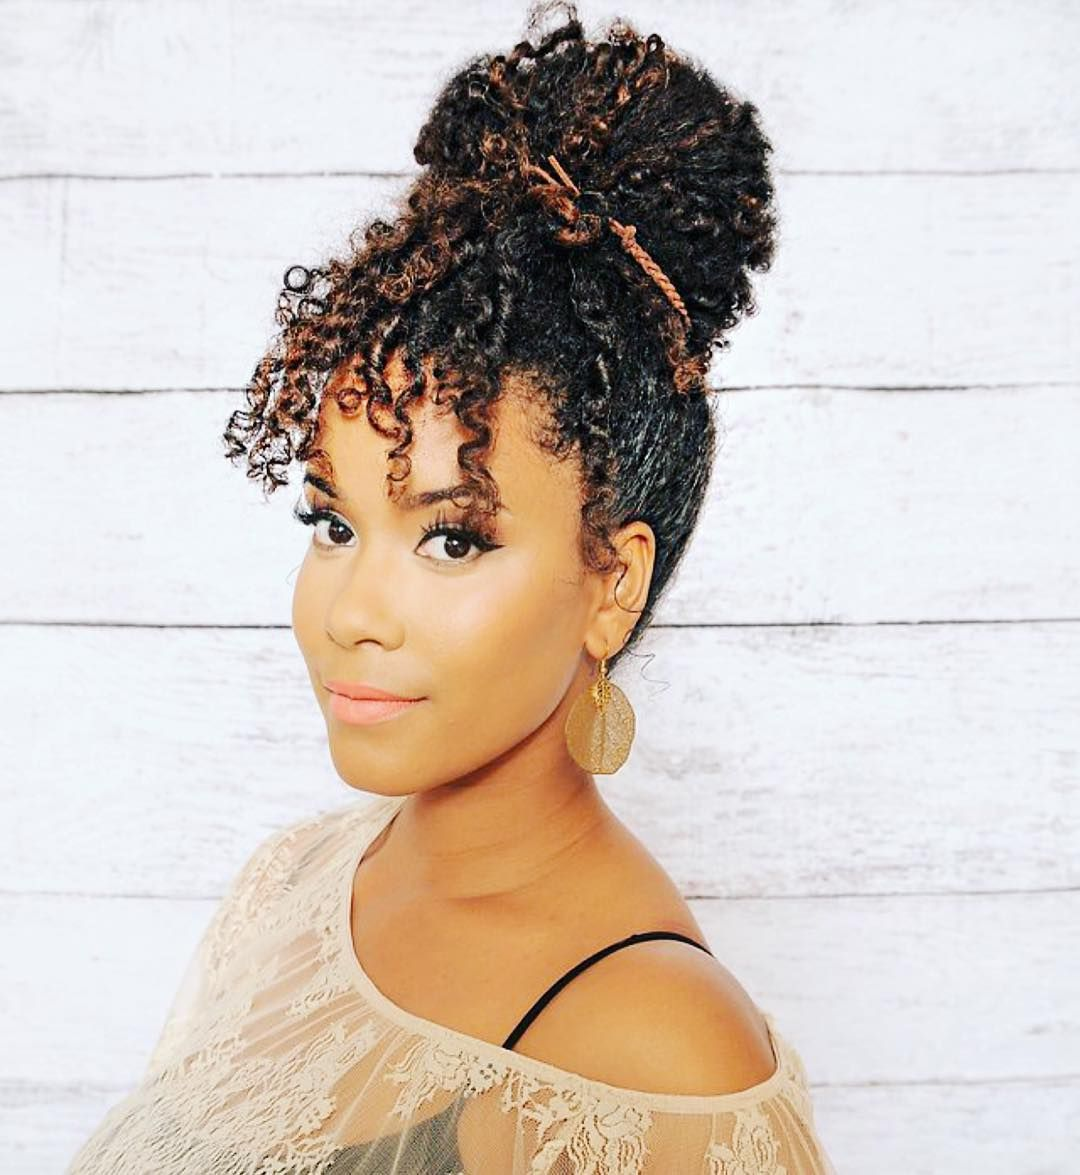 Curly Bun W Faux Bangs Curly Hair Styles Naturally Natural Hair Styles Curly Hair Photos